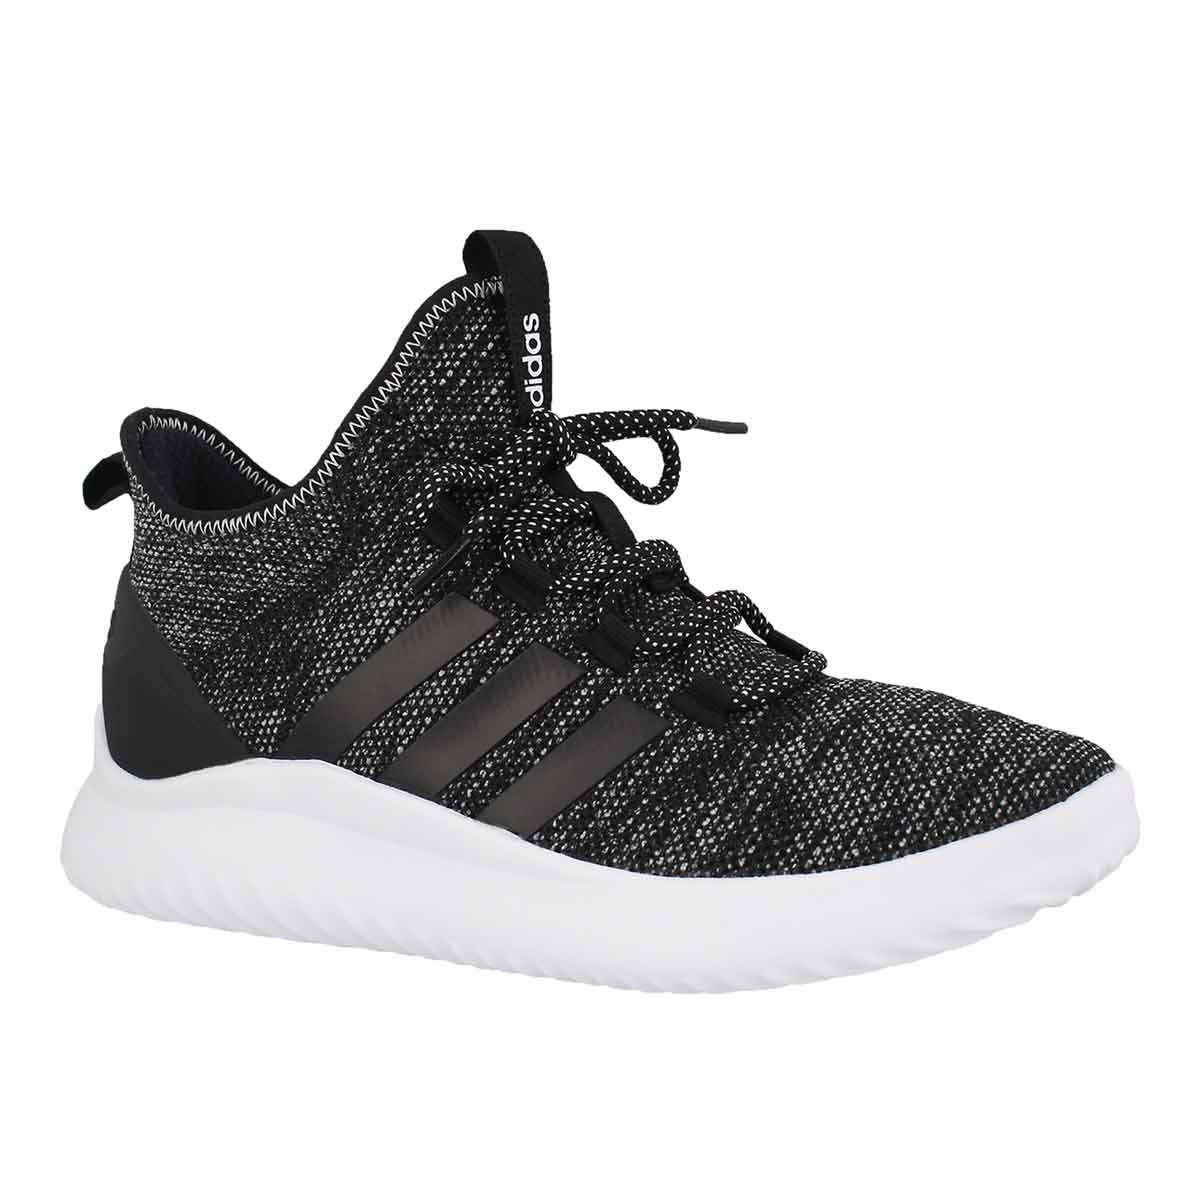 Men's CF ULTIMATE BBALL black running shoes